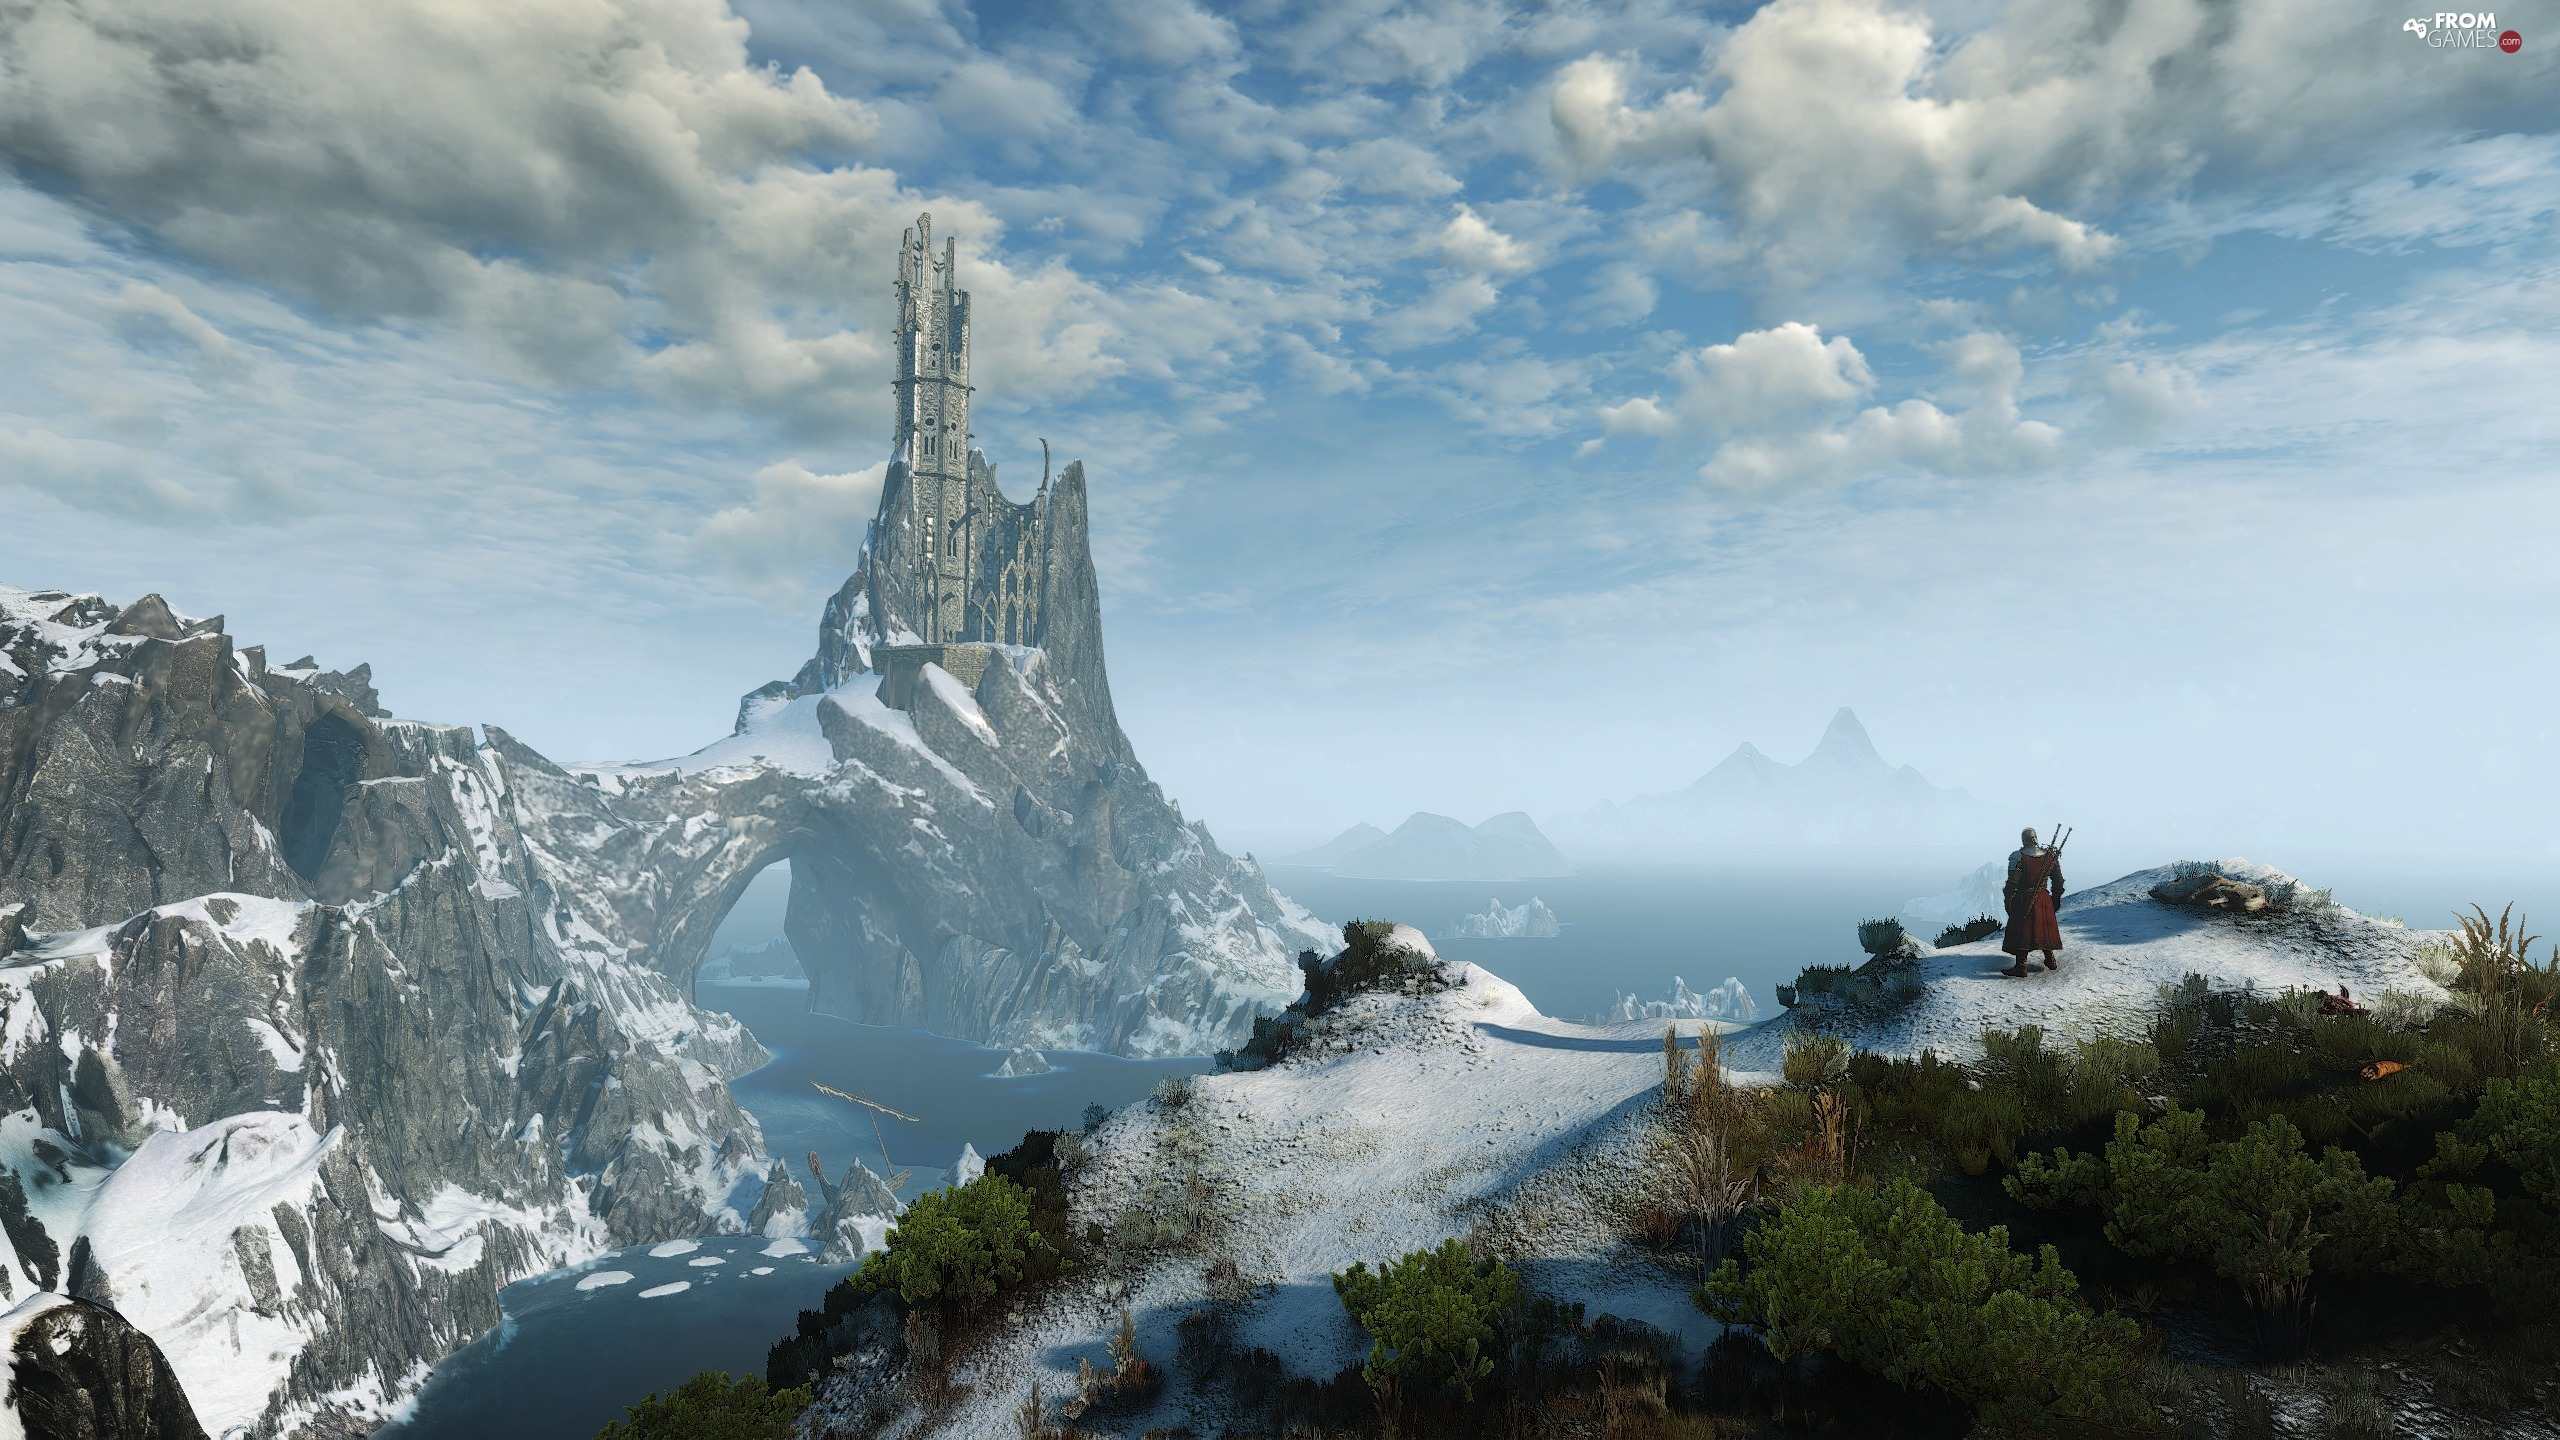 The Witcher 3 Wild Hunt, game, Mountains, Castle, Geralt, The Witcher 3 Wild Hunt